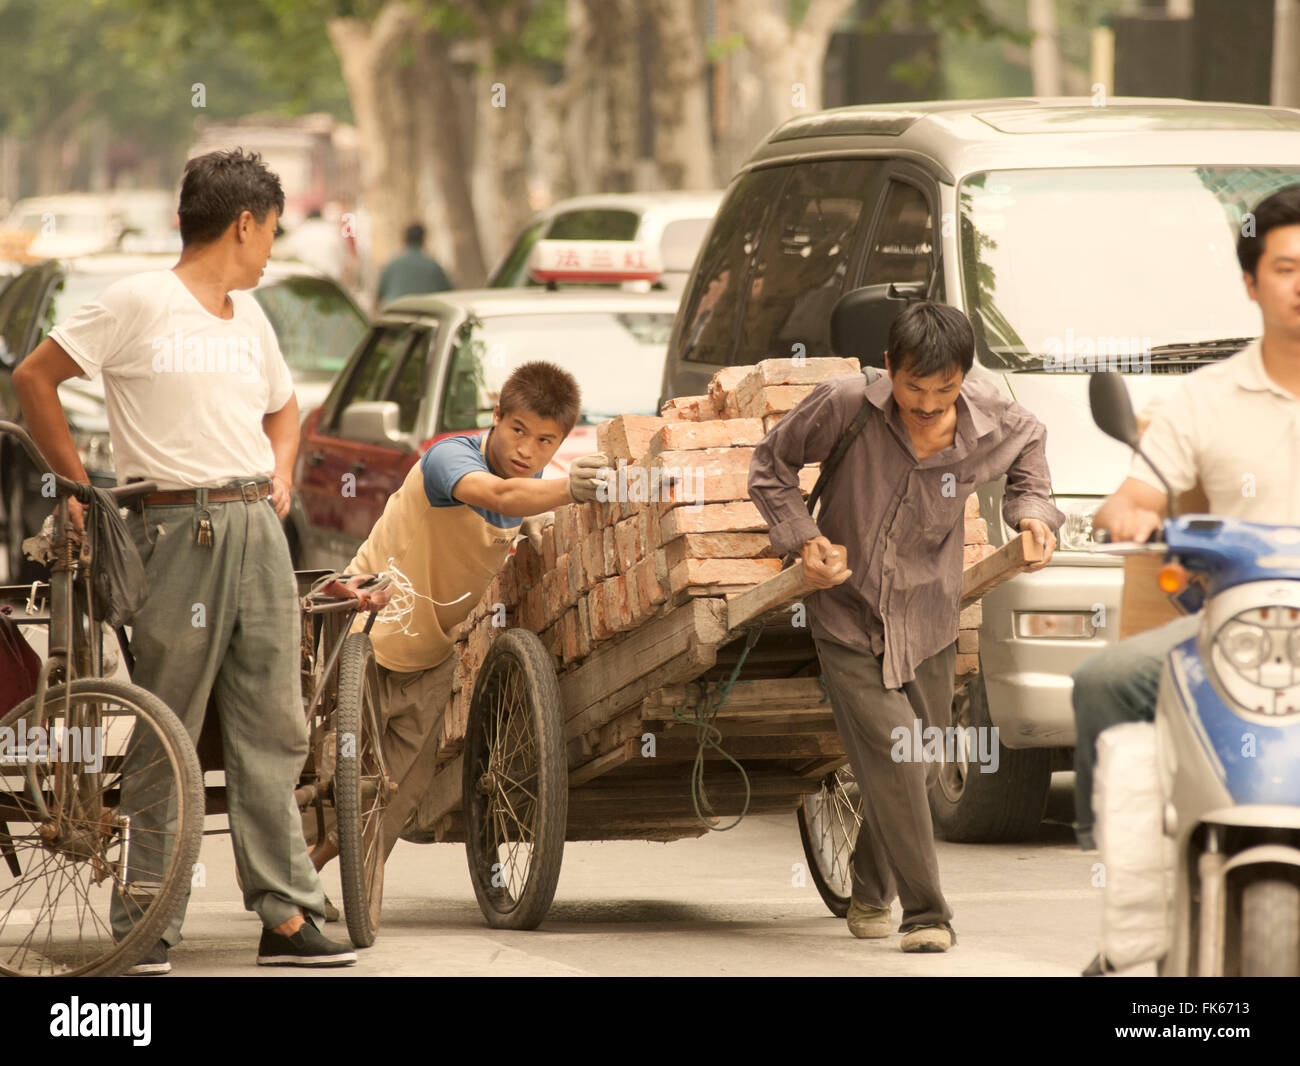 Busy street scene, showing the traditional and the new, Shanghai, China, Asia - Stock Image